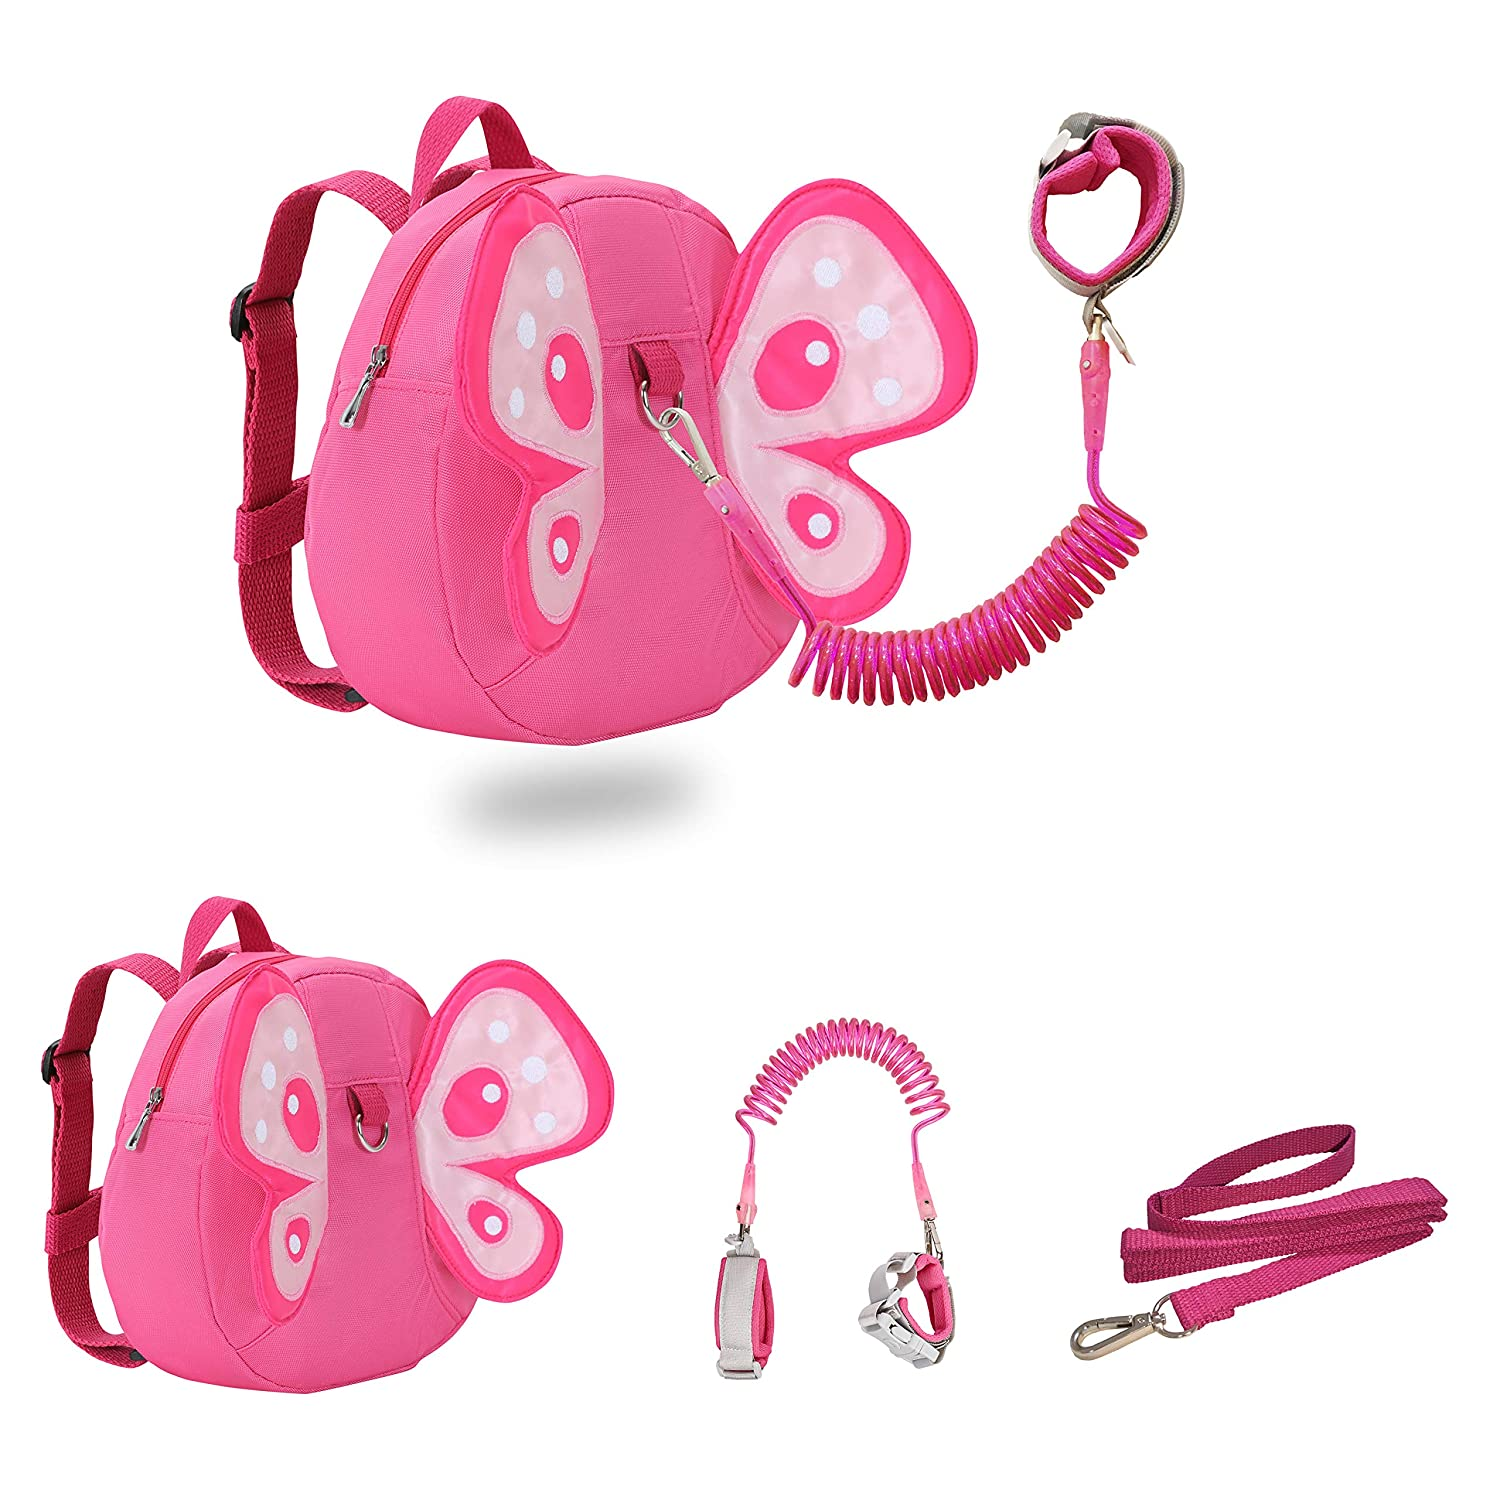 JIANBAO Butterfly Toddler Backpacks with Leashes Anti Lost Wrist Link for 1.5 to 3 Years Kids Girls Boys Safety (Butterfly, Pink)